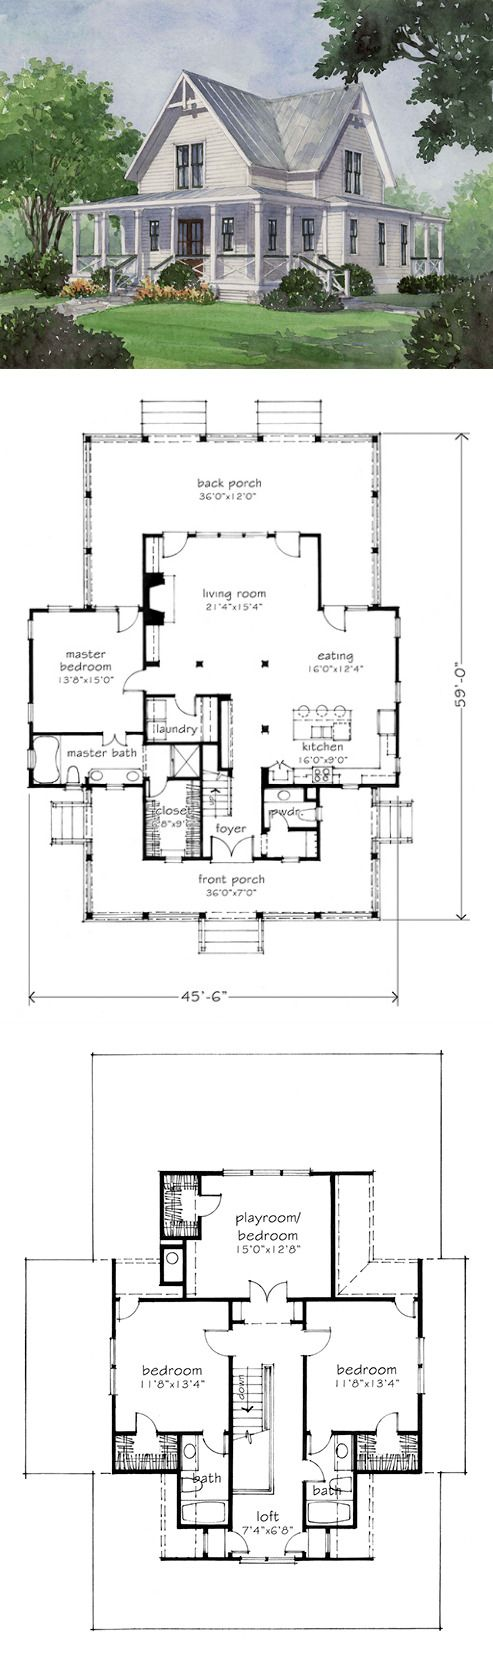 Best 25 farmhouse plans ideas on pinterest farmhouse for Four gables house plan